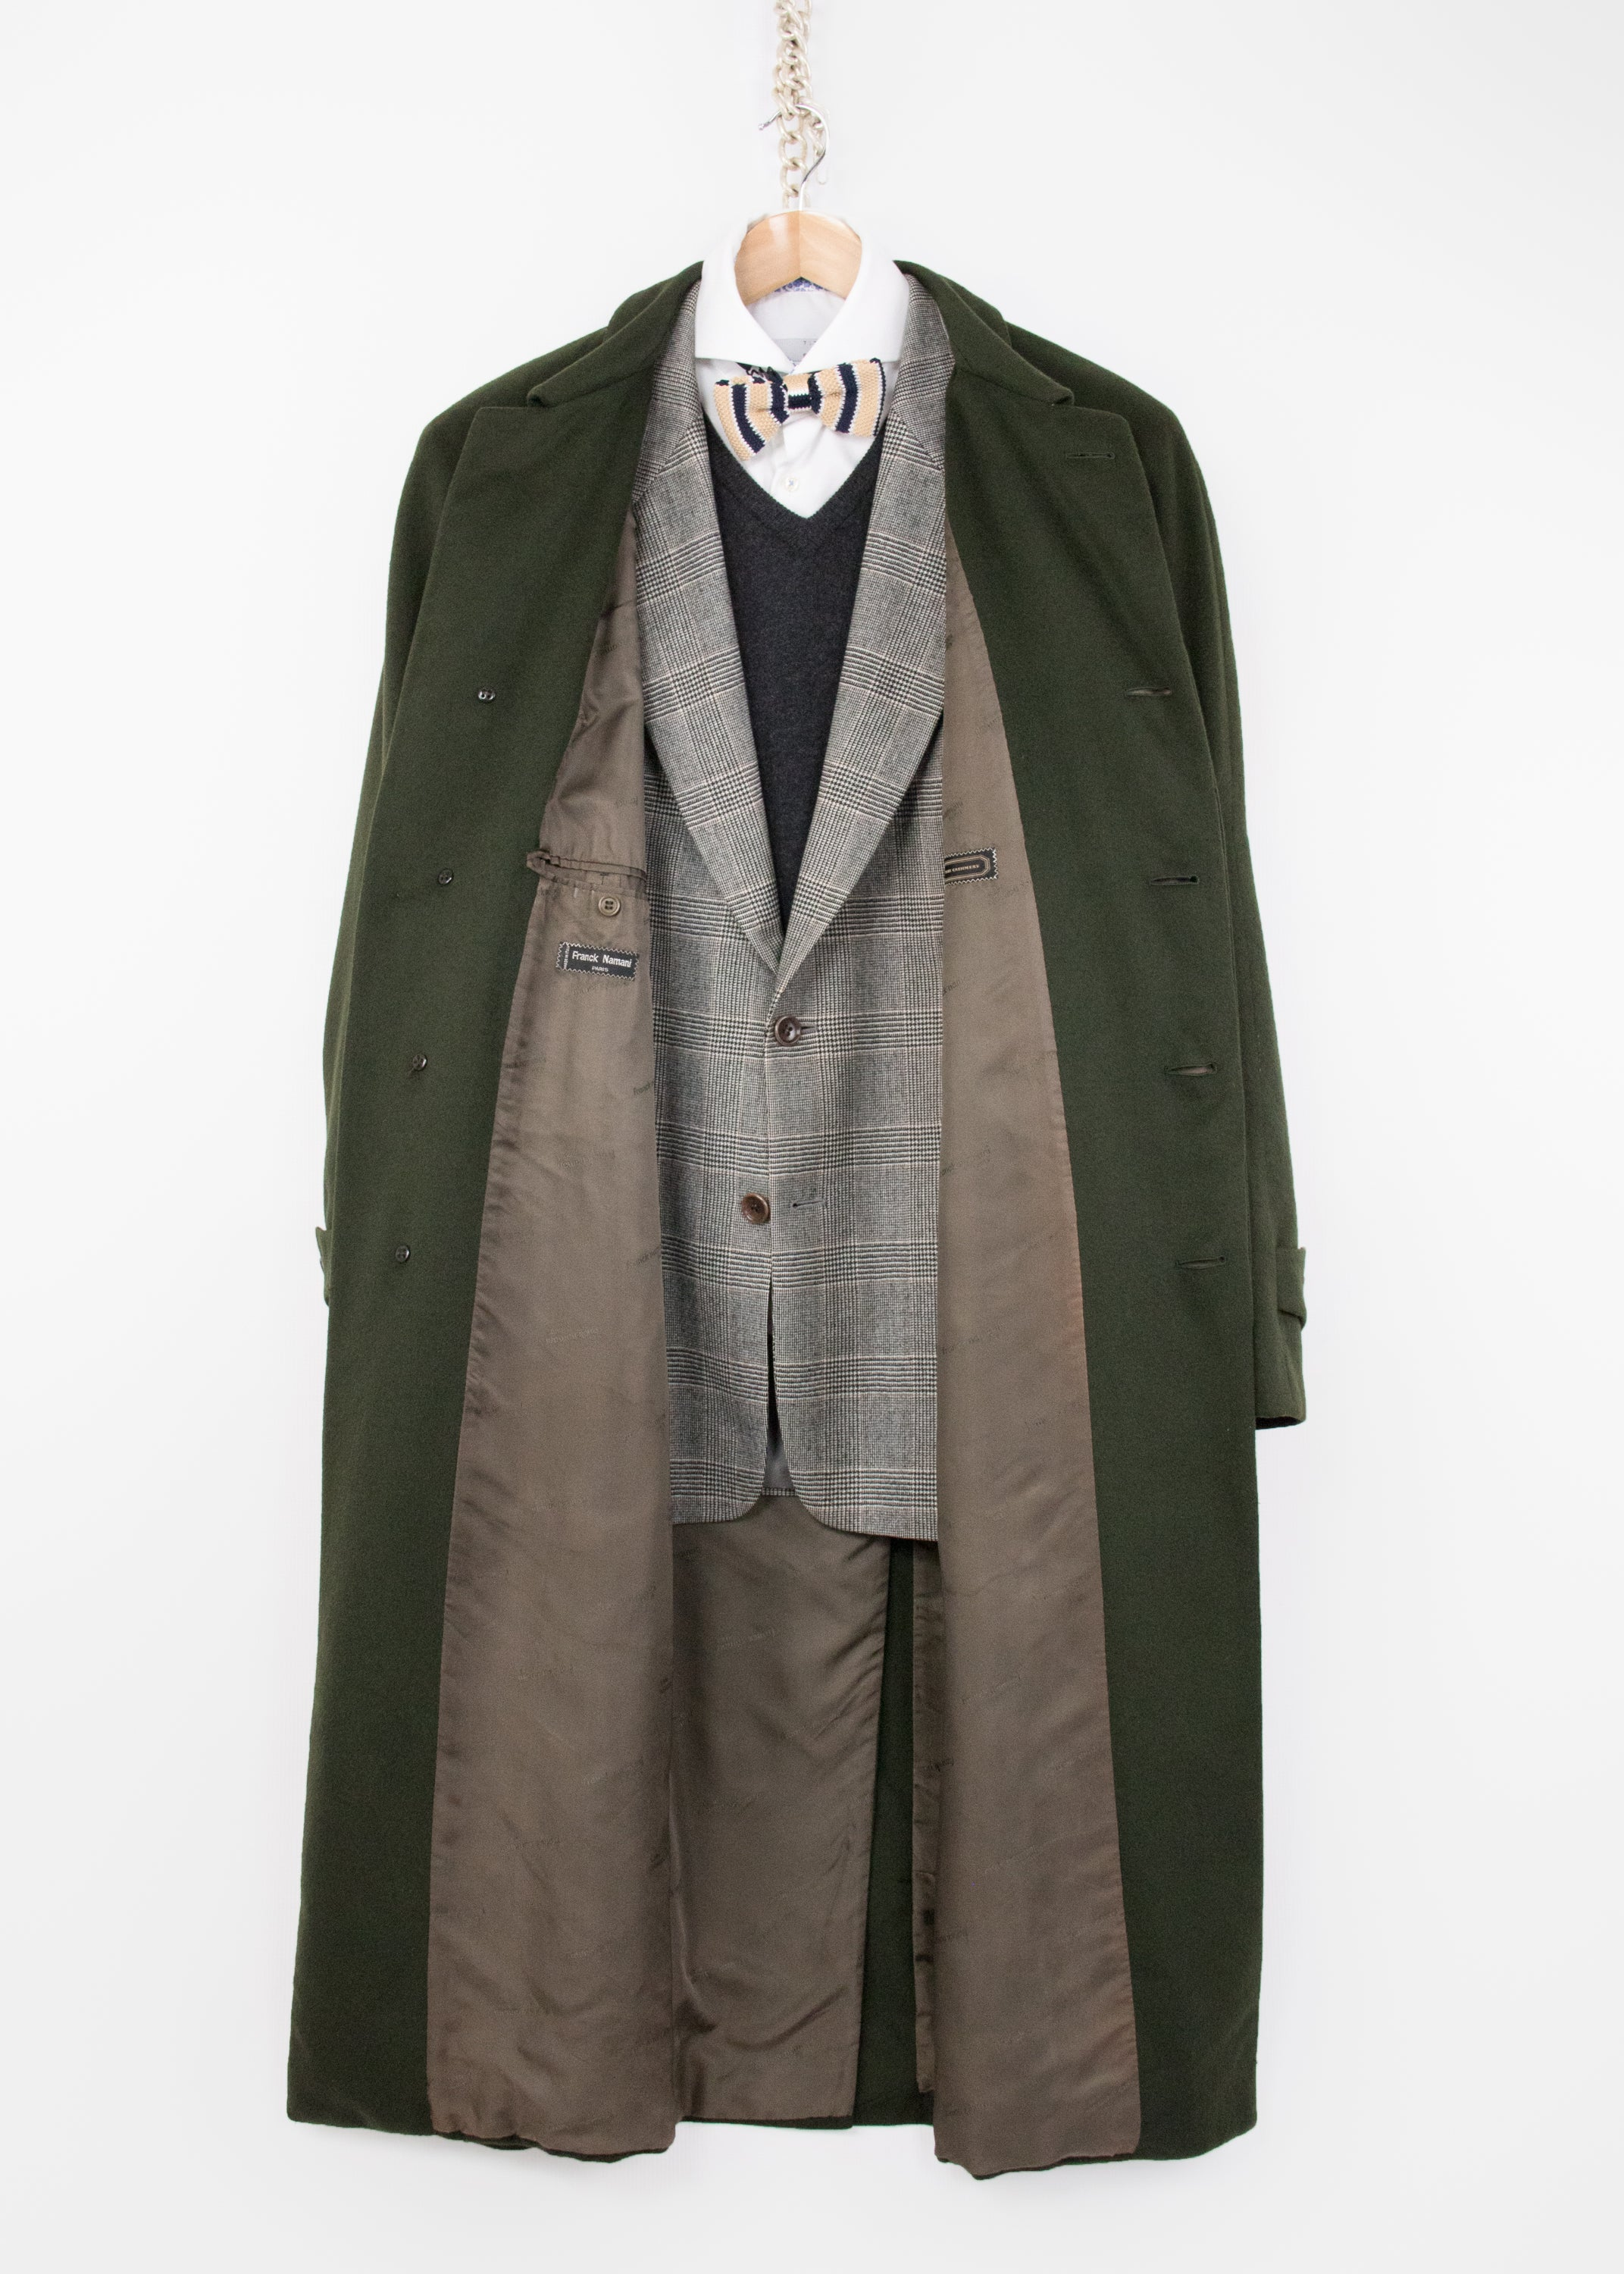 Franck Namani Paris Pure Cashmere Green Long Overcoat, SIZE EU 54, USA 44 R - secondfirst